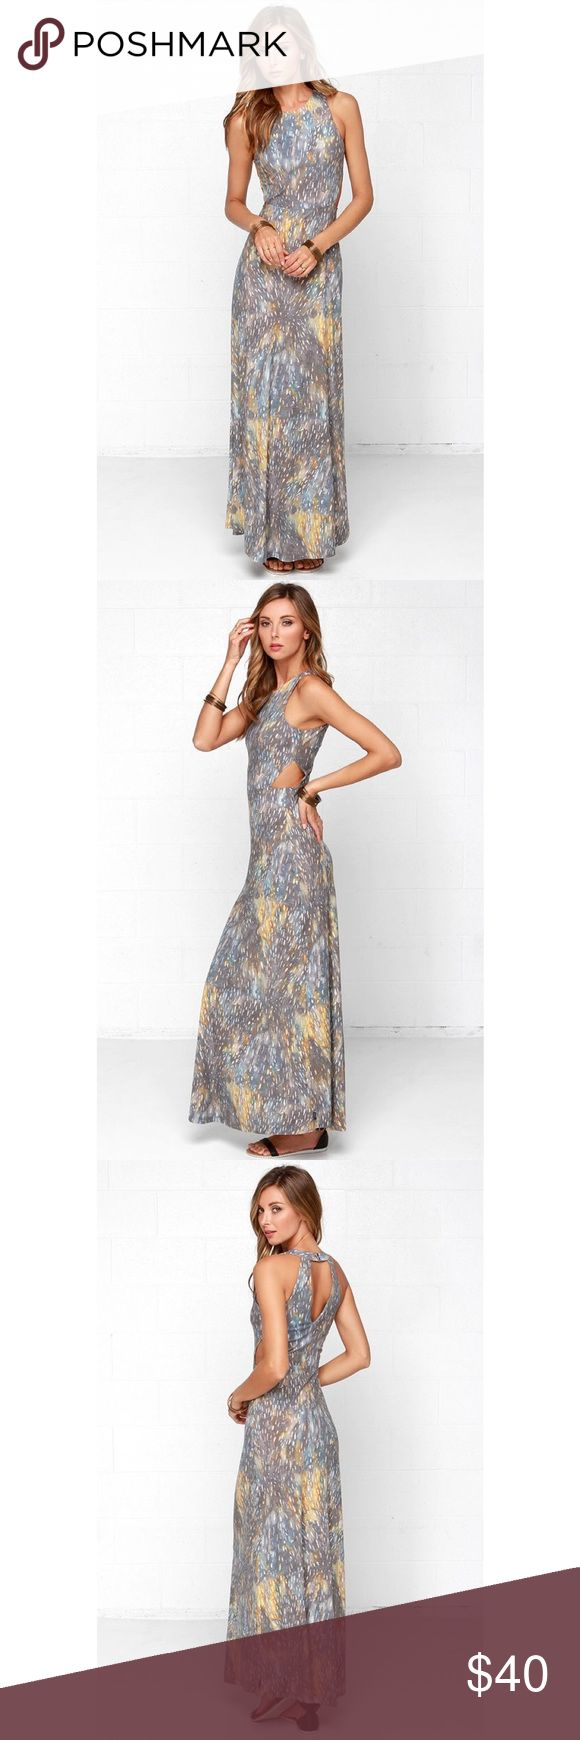 RVCA Outer Reaches Print Maxi Dress Check out this highneck RVCA maxi dress! Trendy side cutouts! Soft grey knit has a beautiful celestial print with yellow-gold and ivory. Double snap button closure tops a sexy back cutout. Bodice has attached shelf bra and the skirt is unlined. I wanted this for so long and bummed it doesn't fit me! This dress is a small but fits like an XS so I listed as such. Big breasted gals beware!!!  • Size Small (Fits like XS) • 65% Polyester / 35% Viscose • Length…